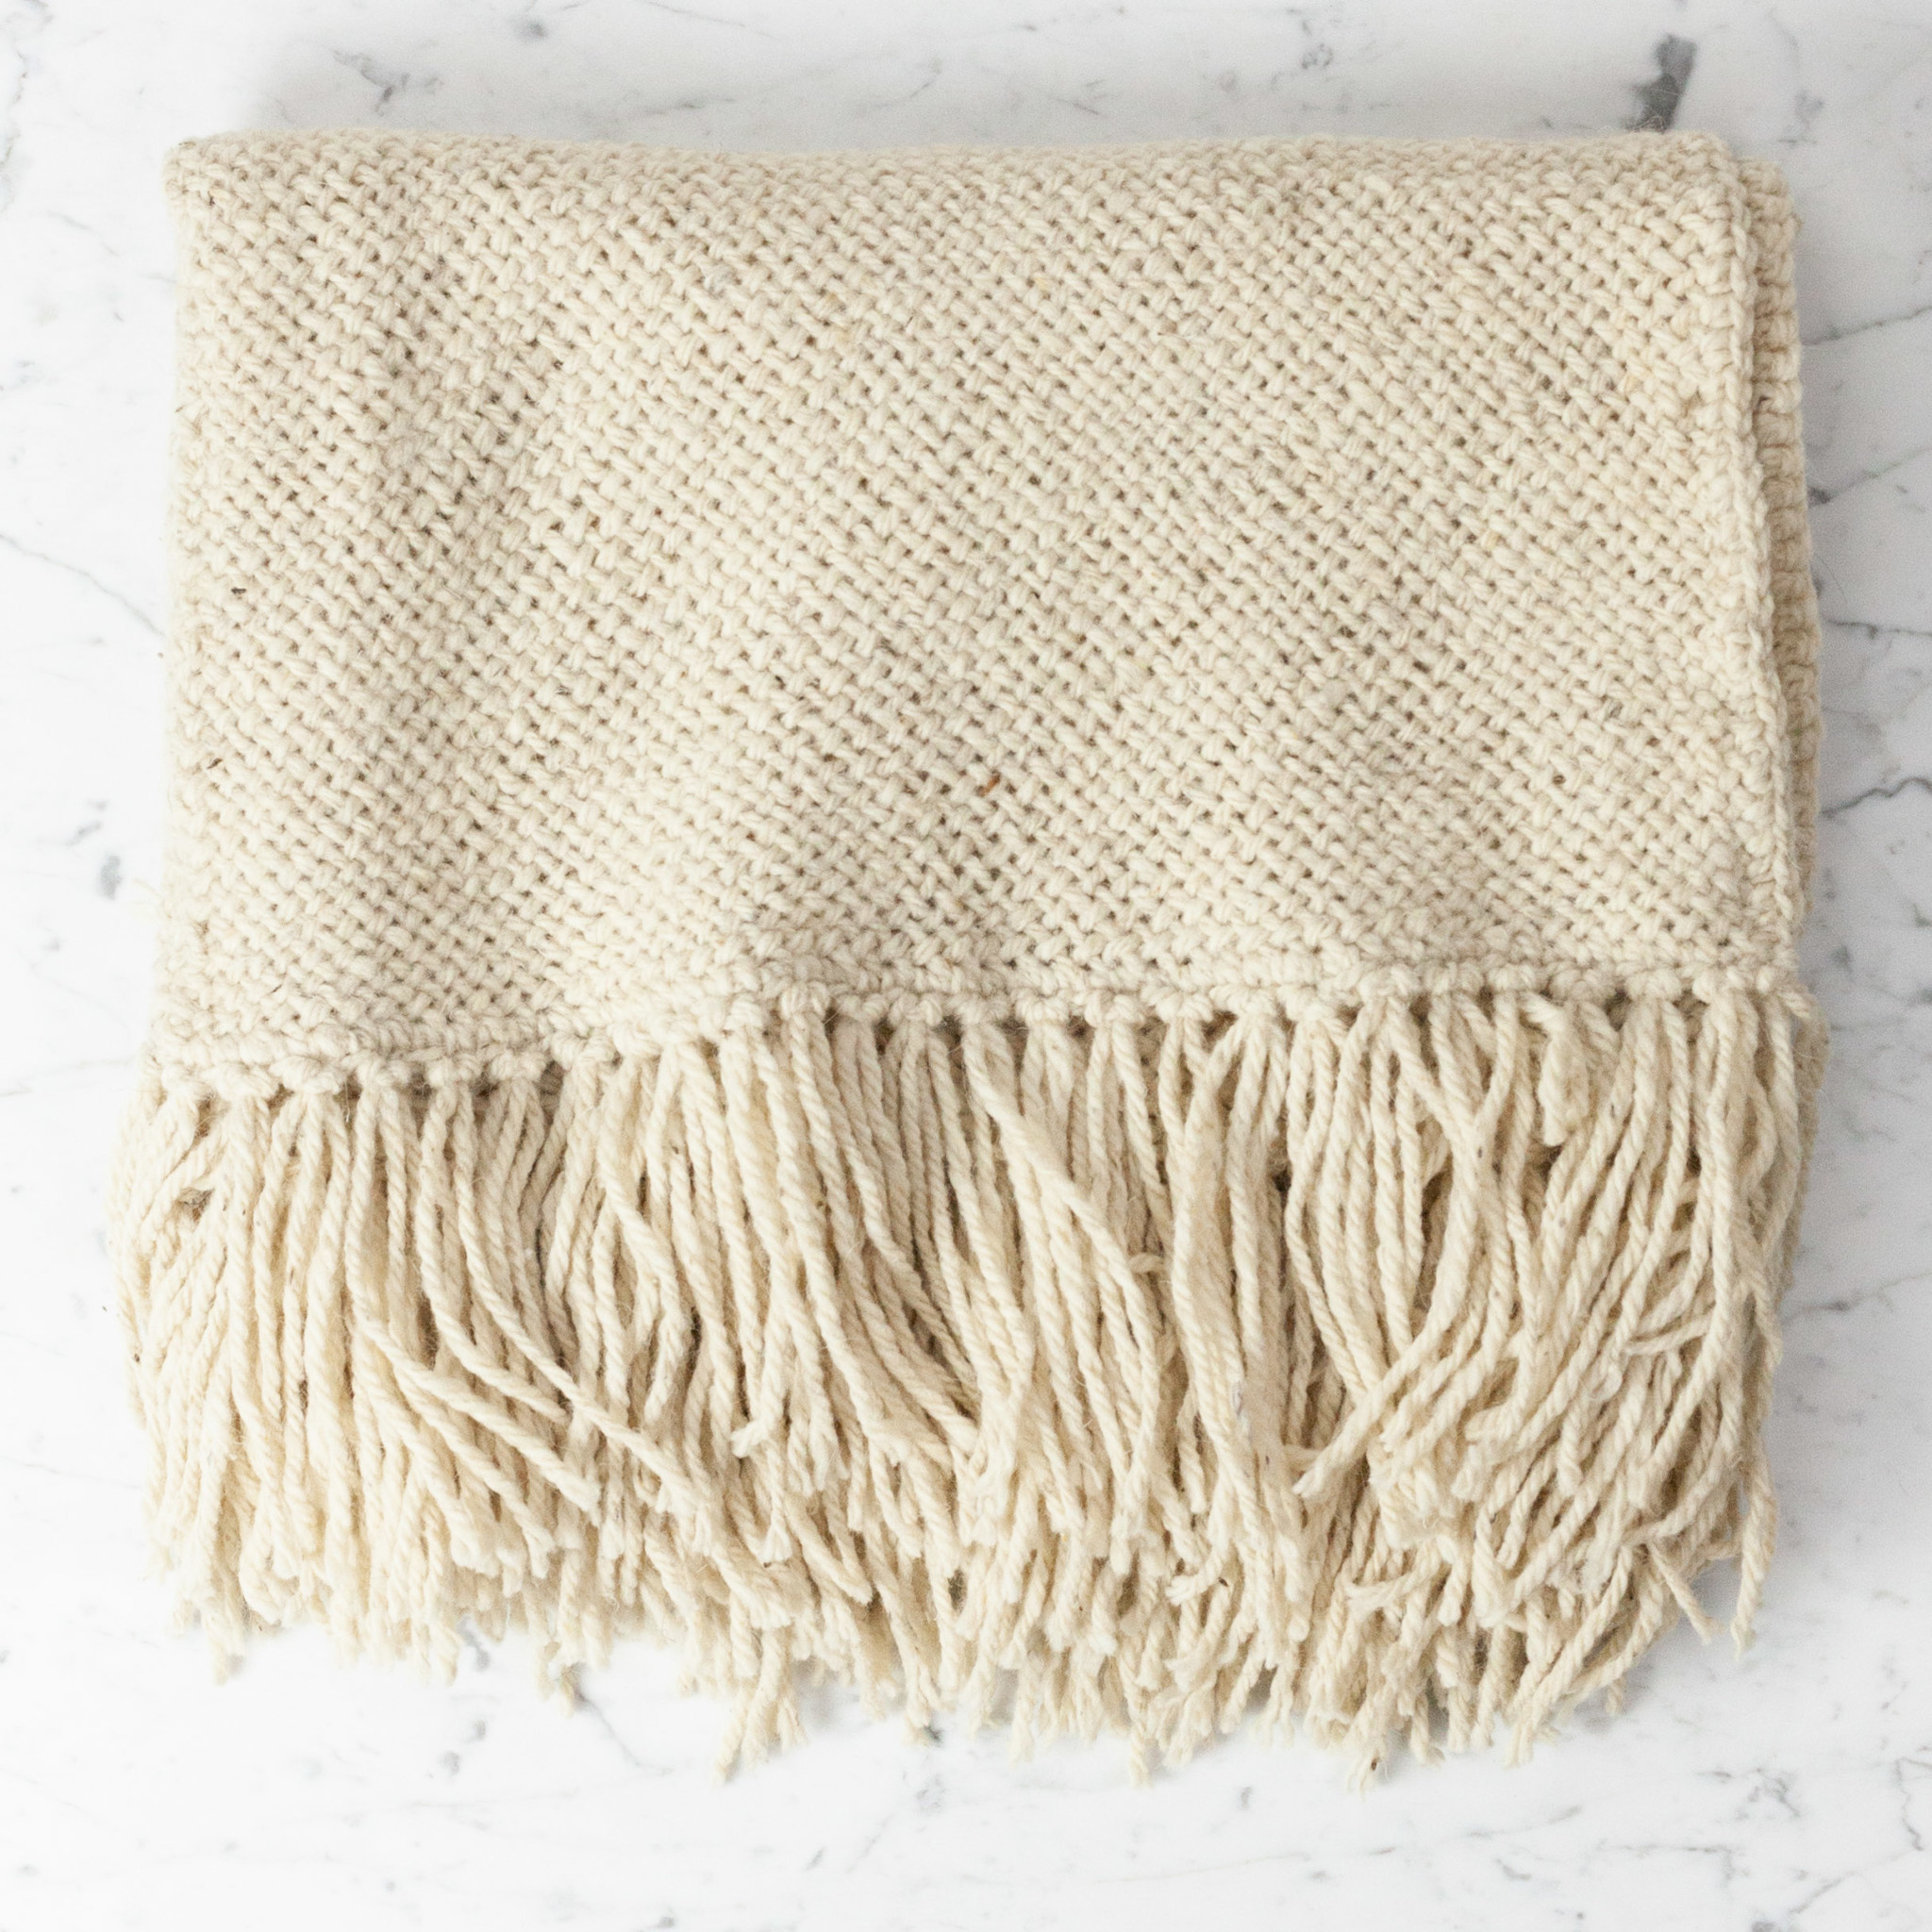 Handwoven Llao Throw - Naturally Dyed Wool with Fringe - Cream - Medium - 3 x 5'